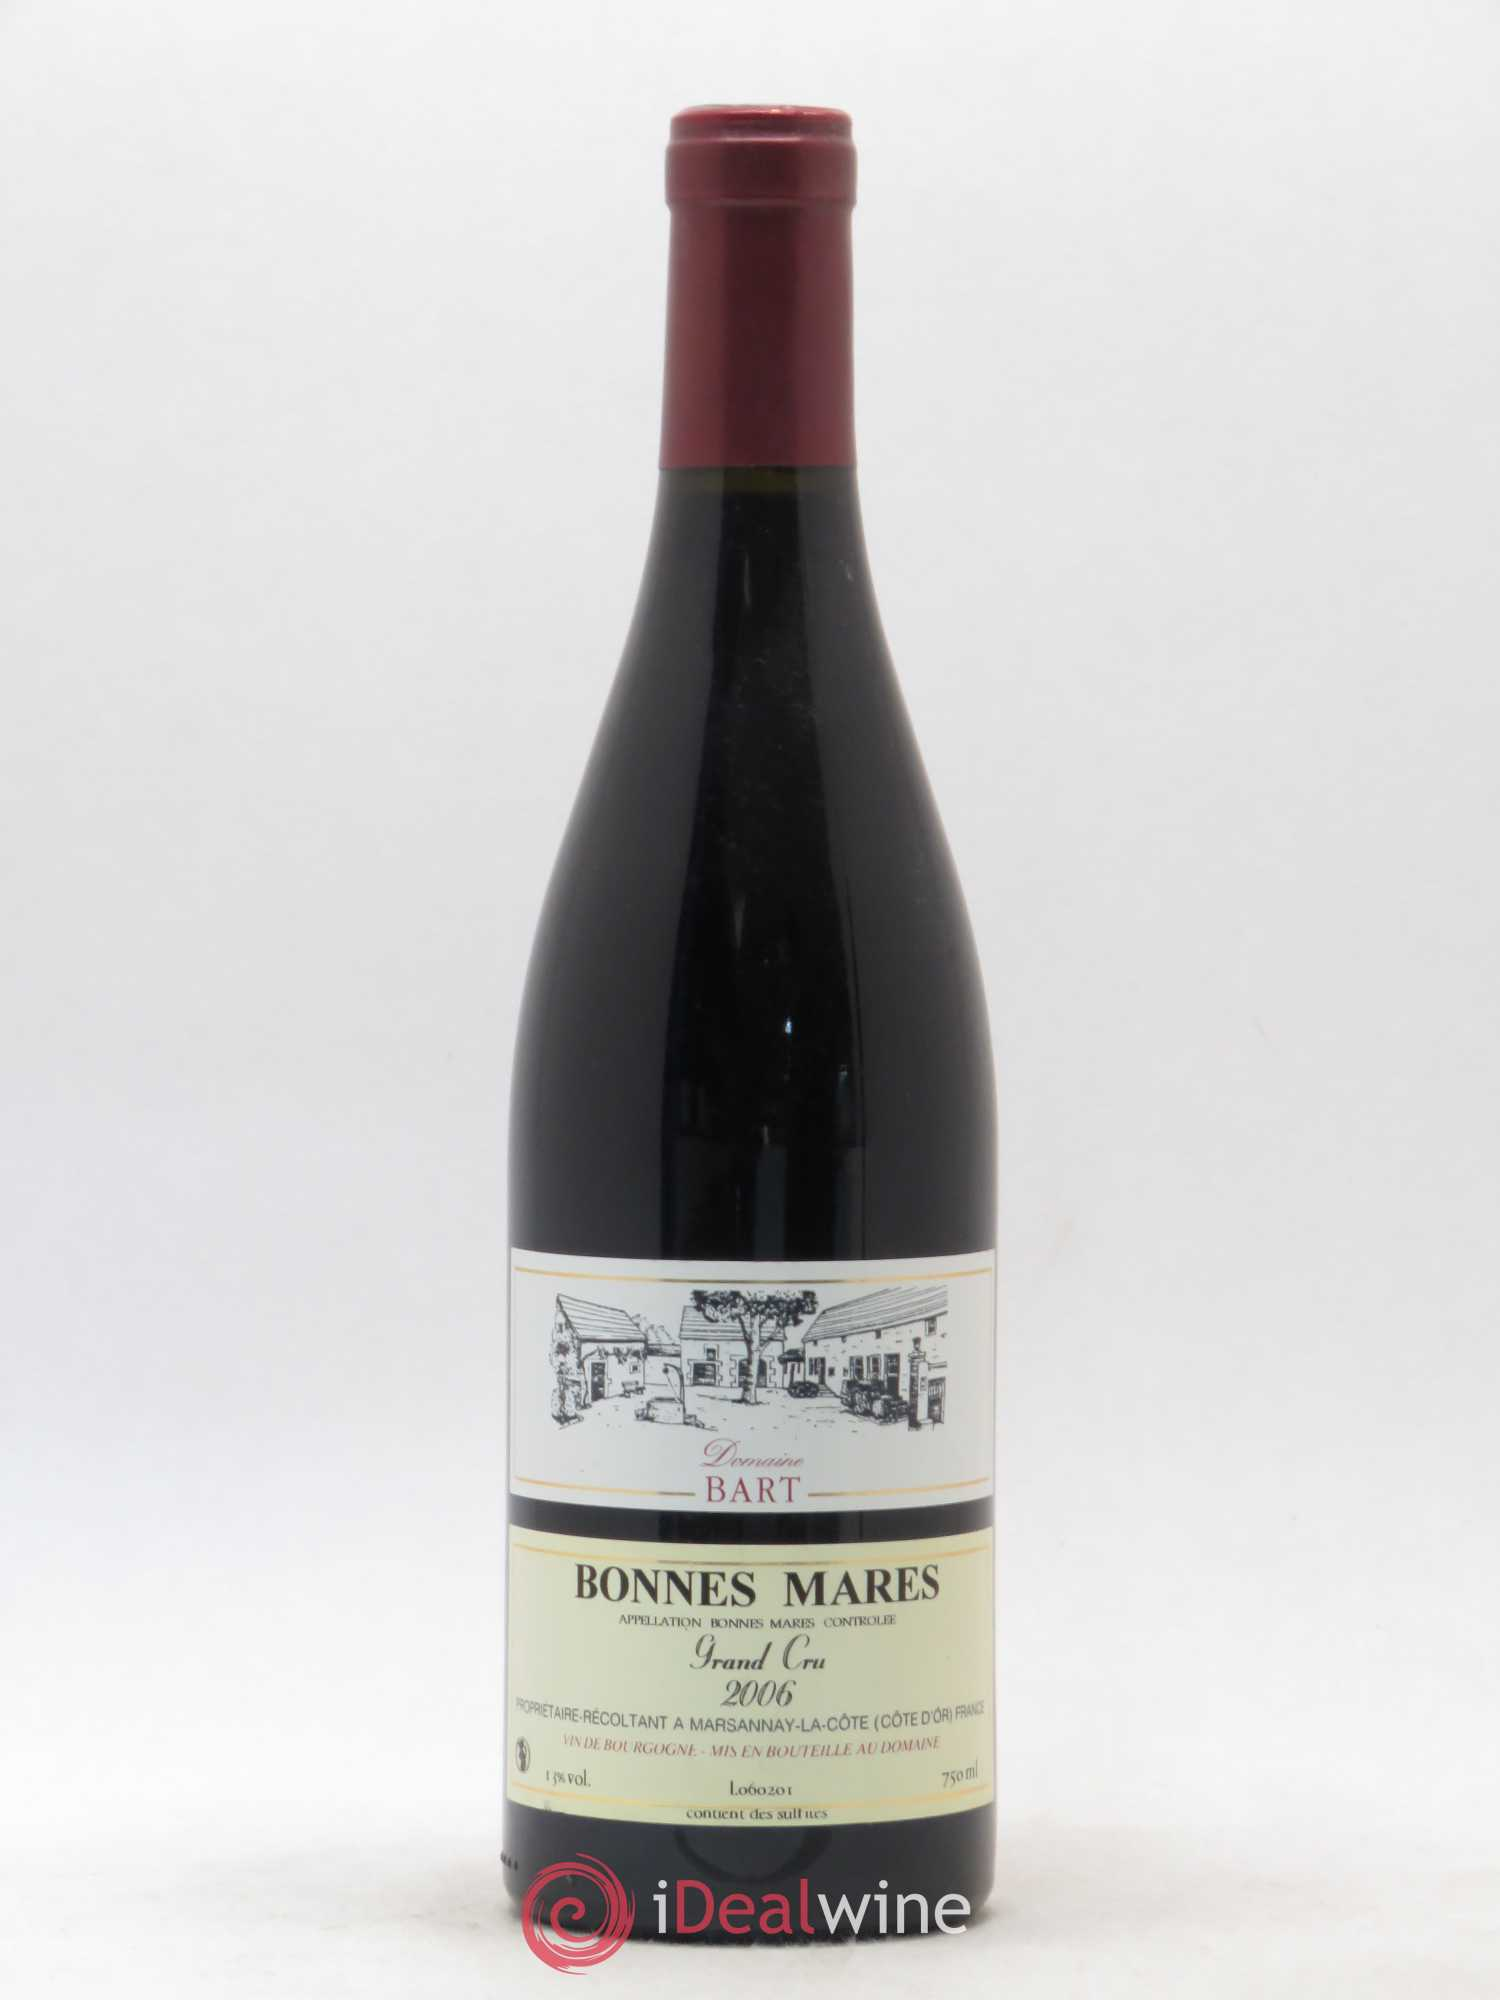 Bonnes-Mares Grand Cru Domaine Bart  2006 - Lot of 1 Bottle